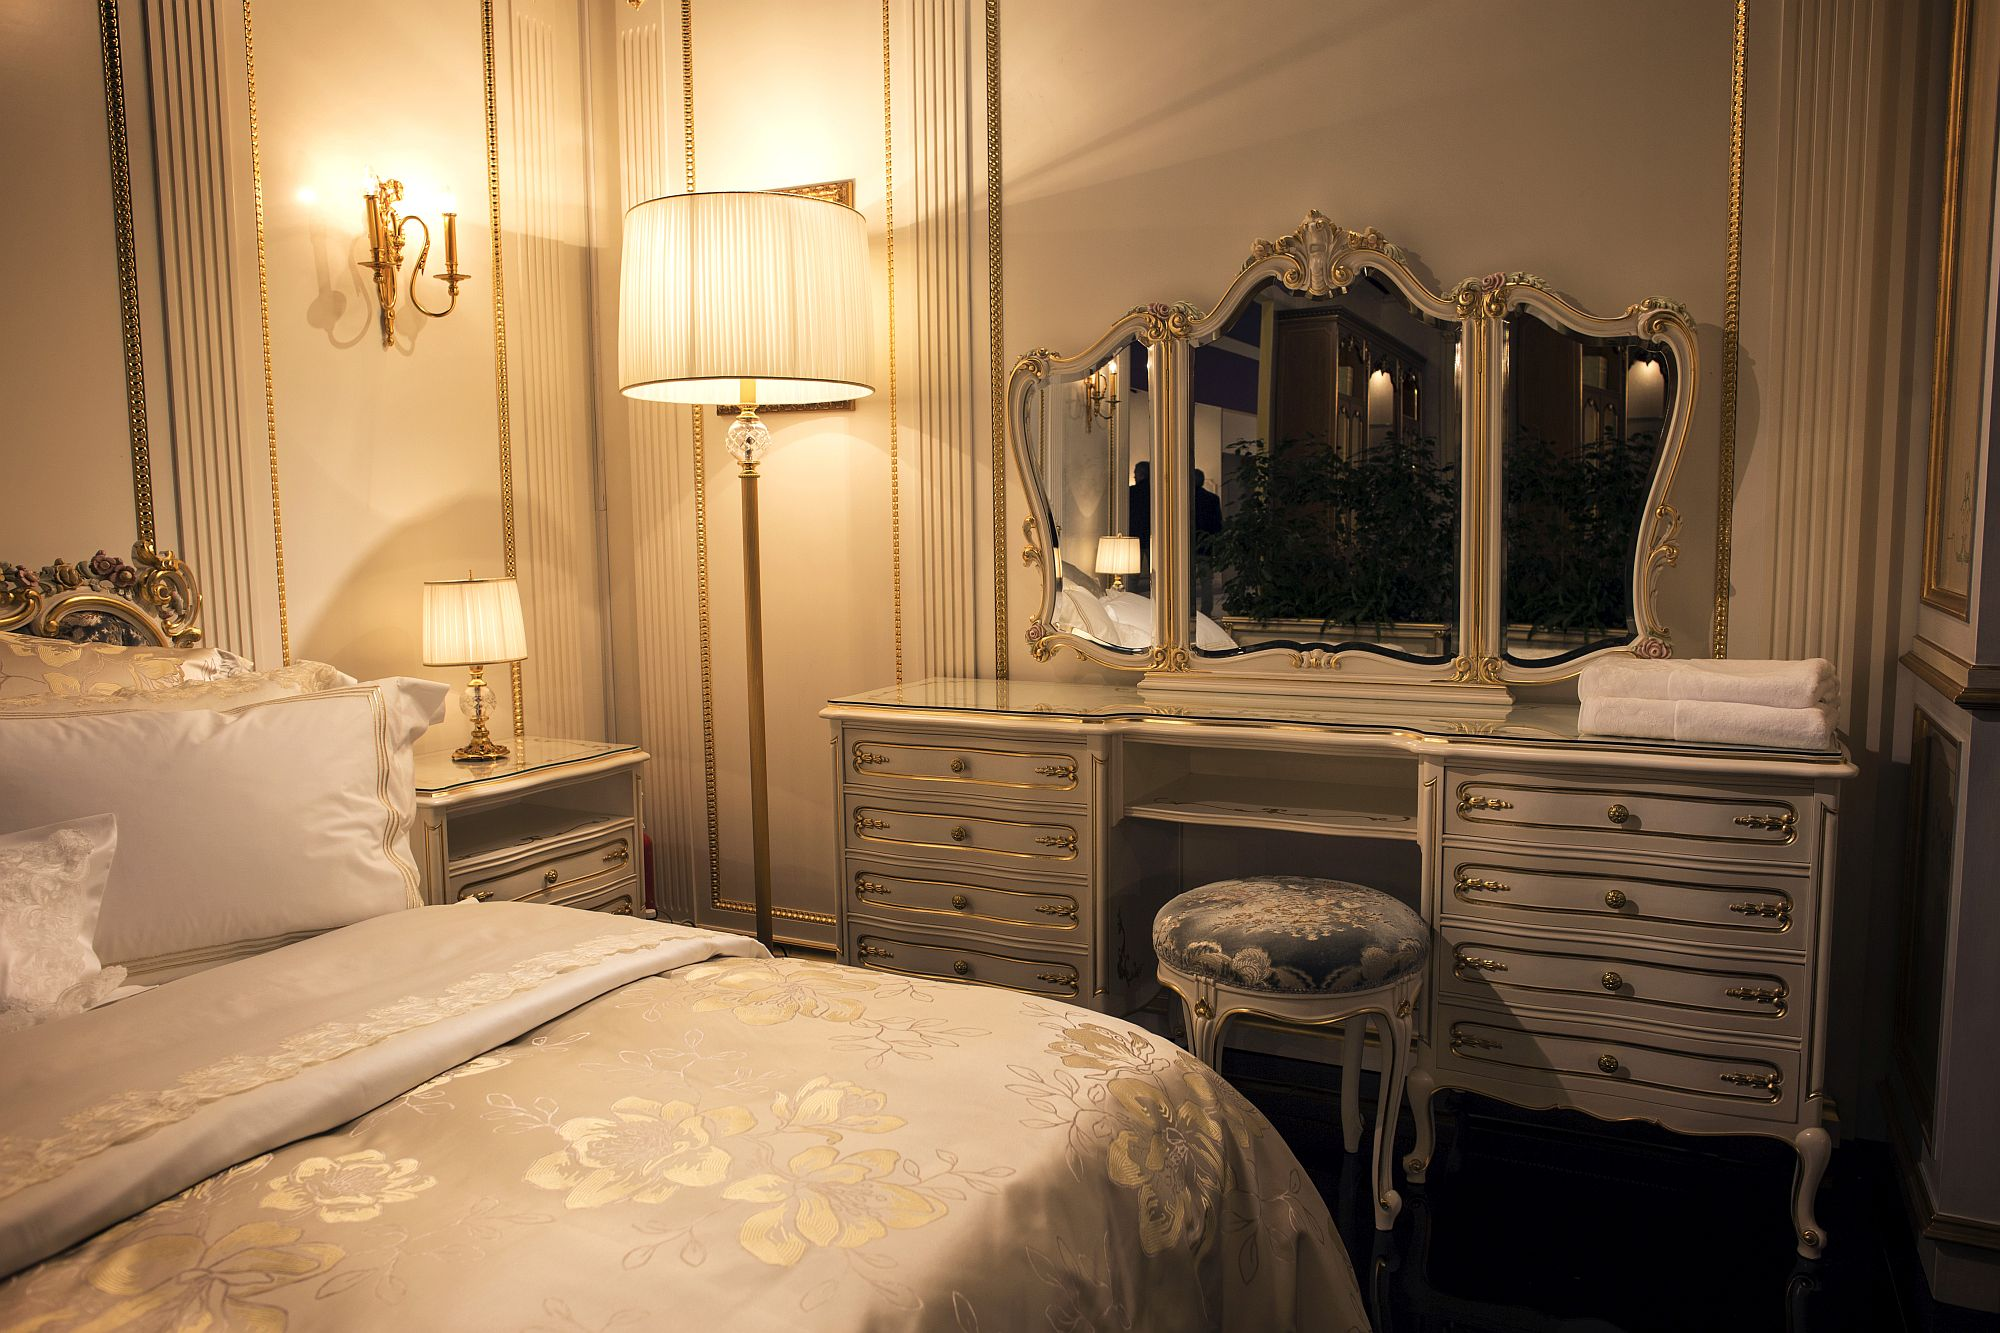 Dresser for the small bedroom with classic frame for the mirror